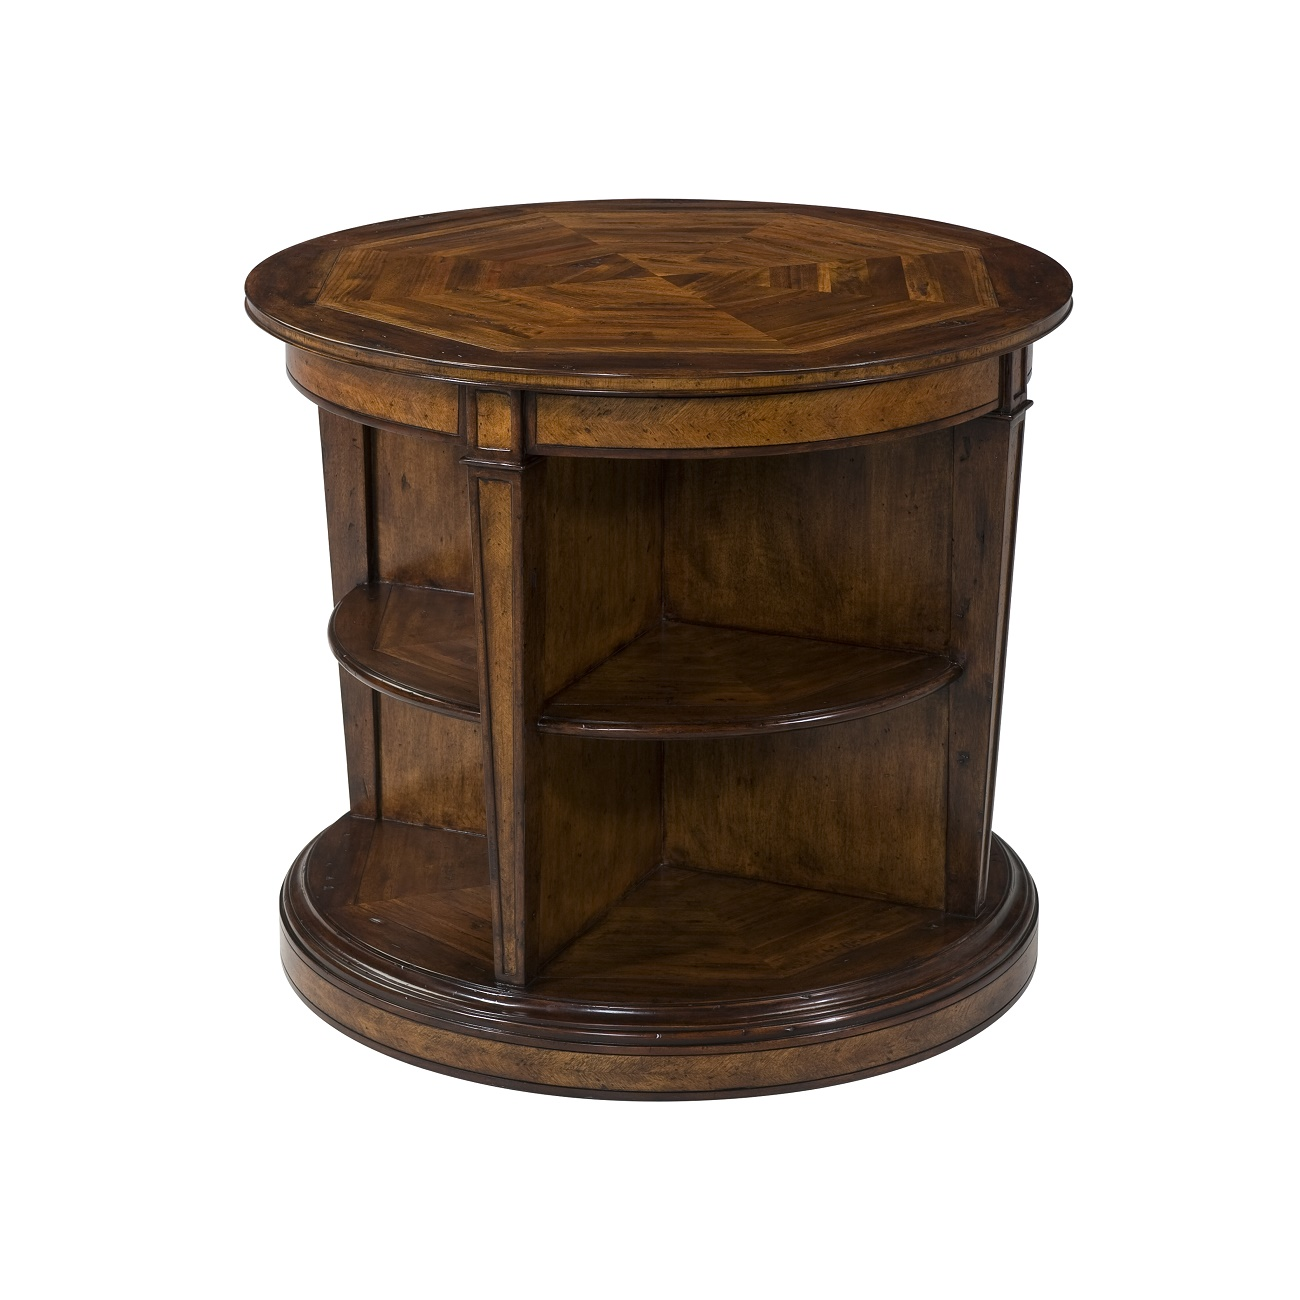 Theodore Alexander around the Olive Groves Accent Lamp Table Brooklyn, New York